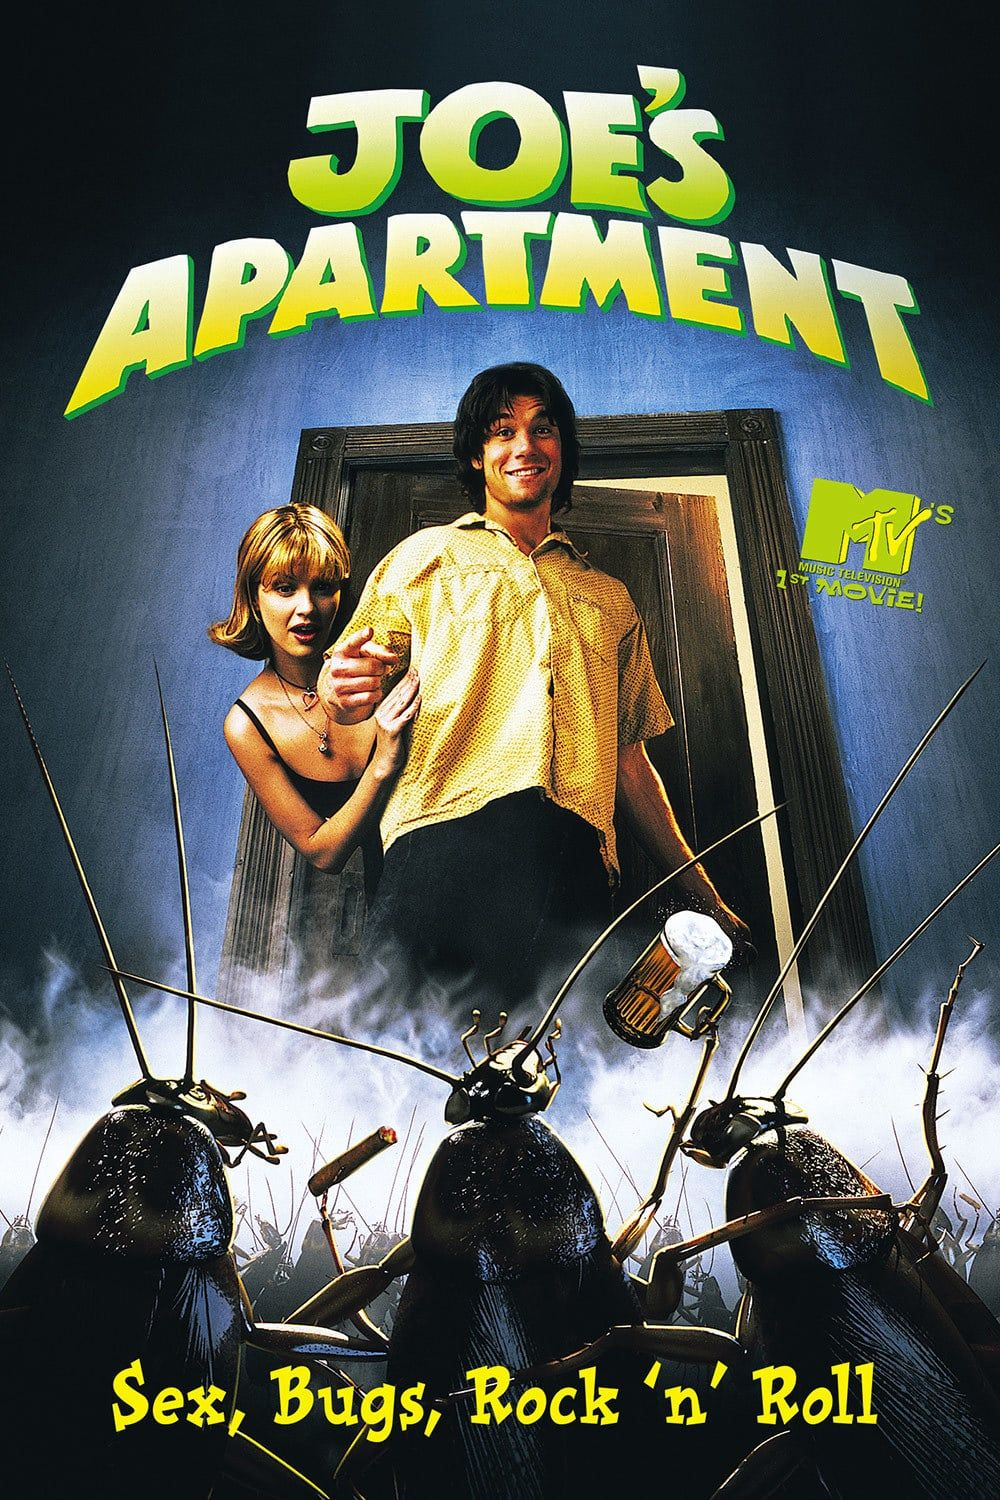 Joe S Apartment FULL MOVIE Streaming Online In Hd 720p Video Quality